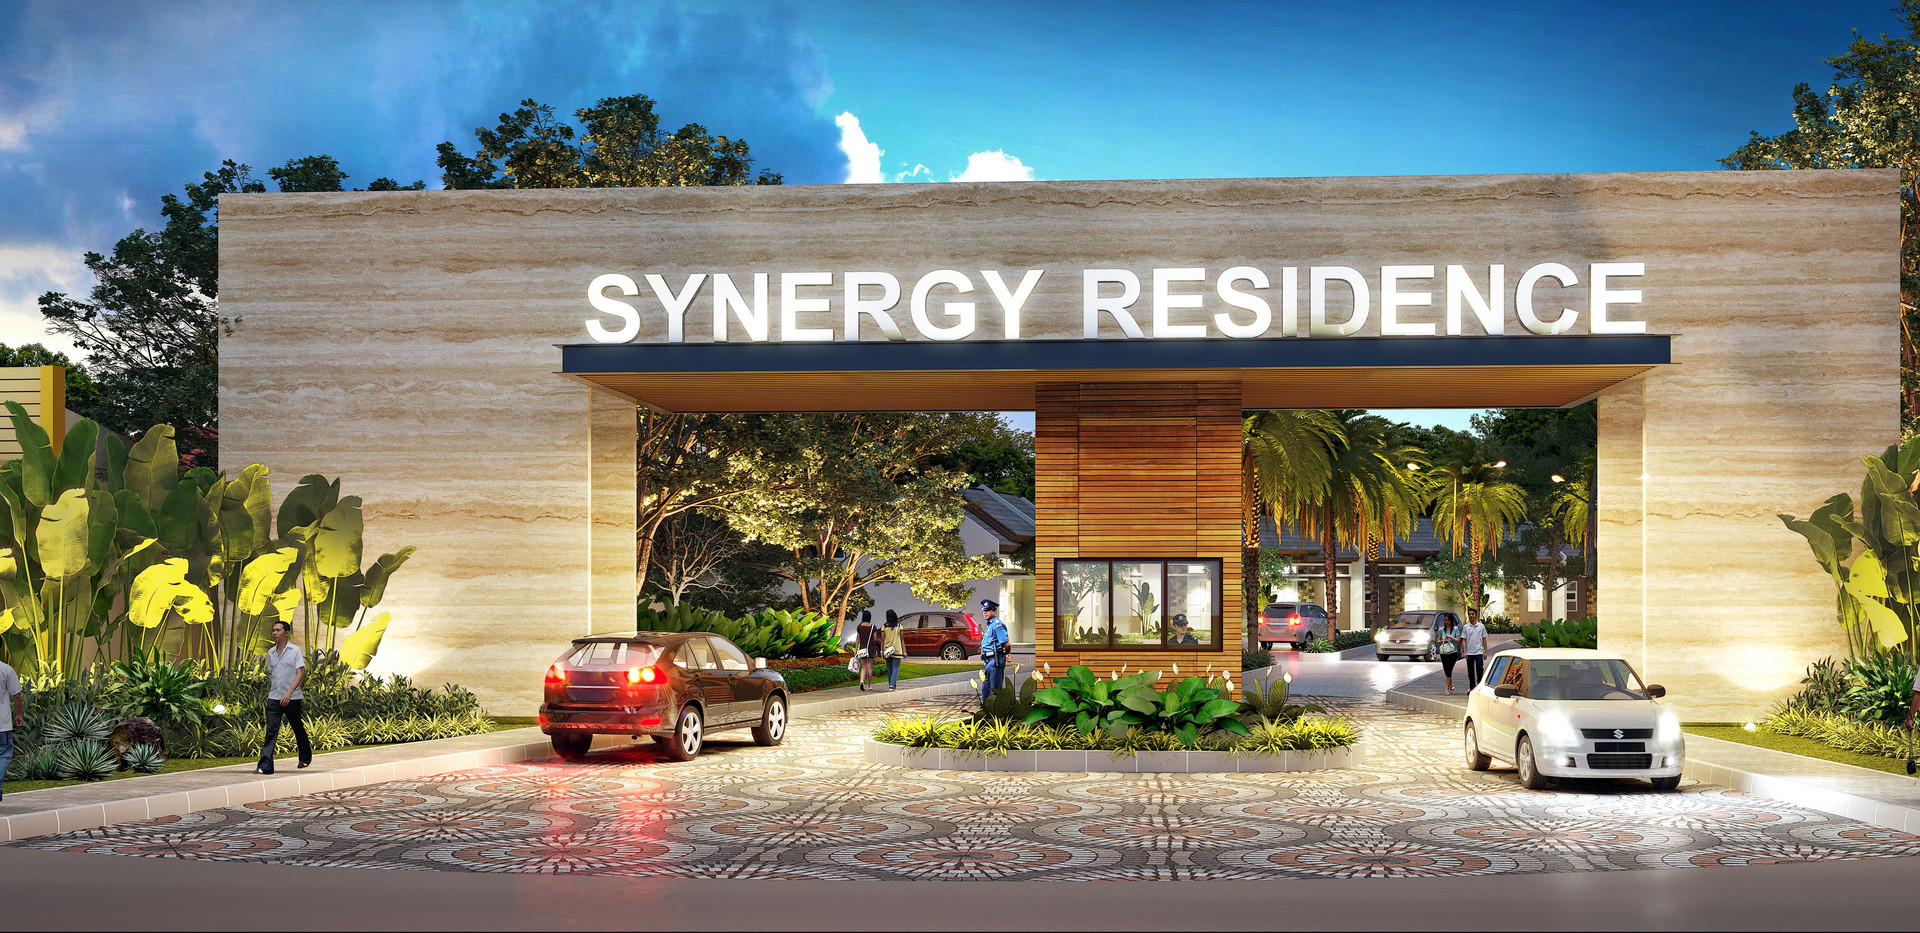 SYNERGY MAIN GATE